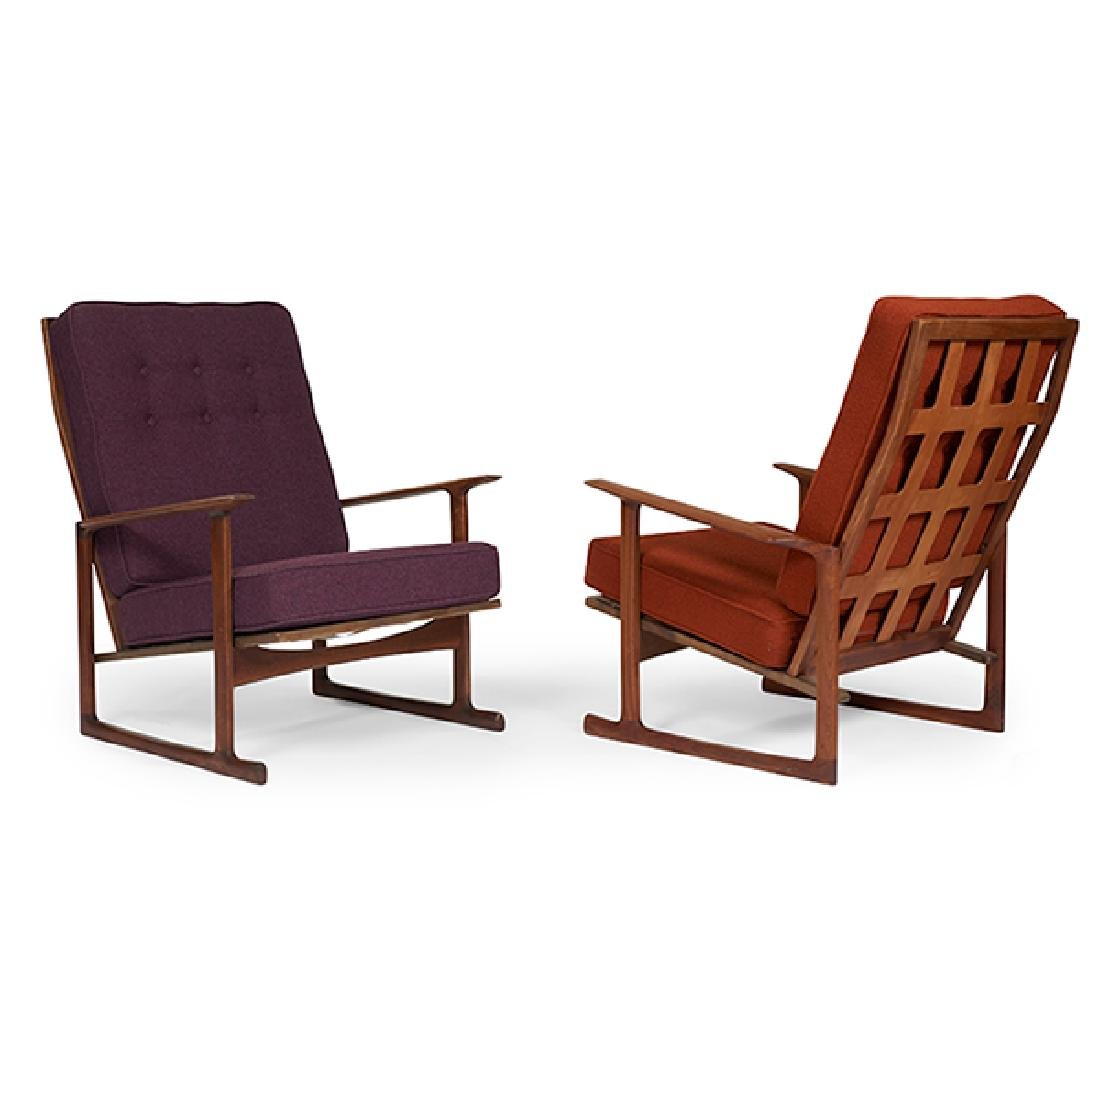 "Ib Kofod-Larsen for Selig lounge chairs, pair 29""w x"